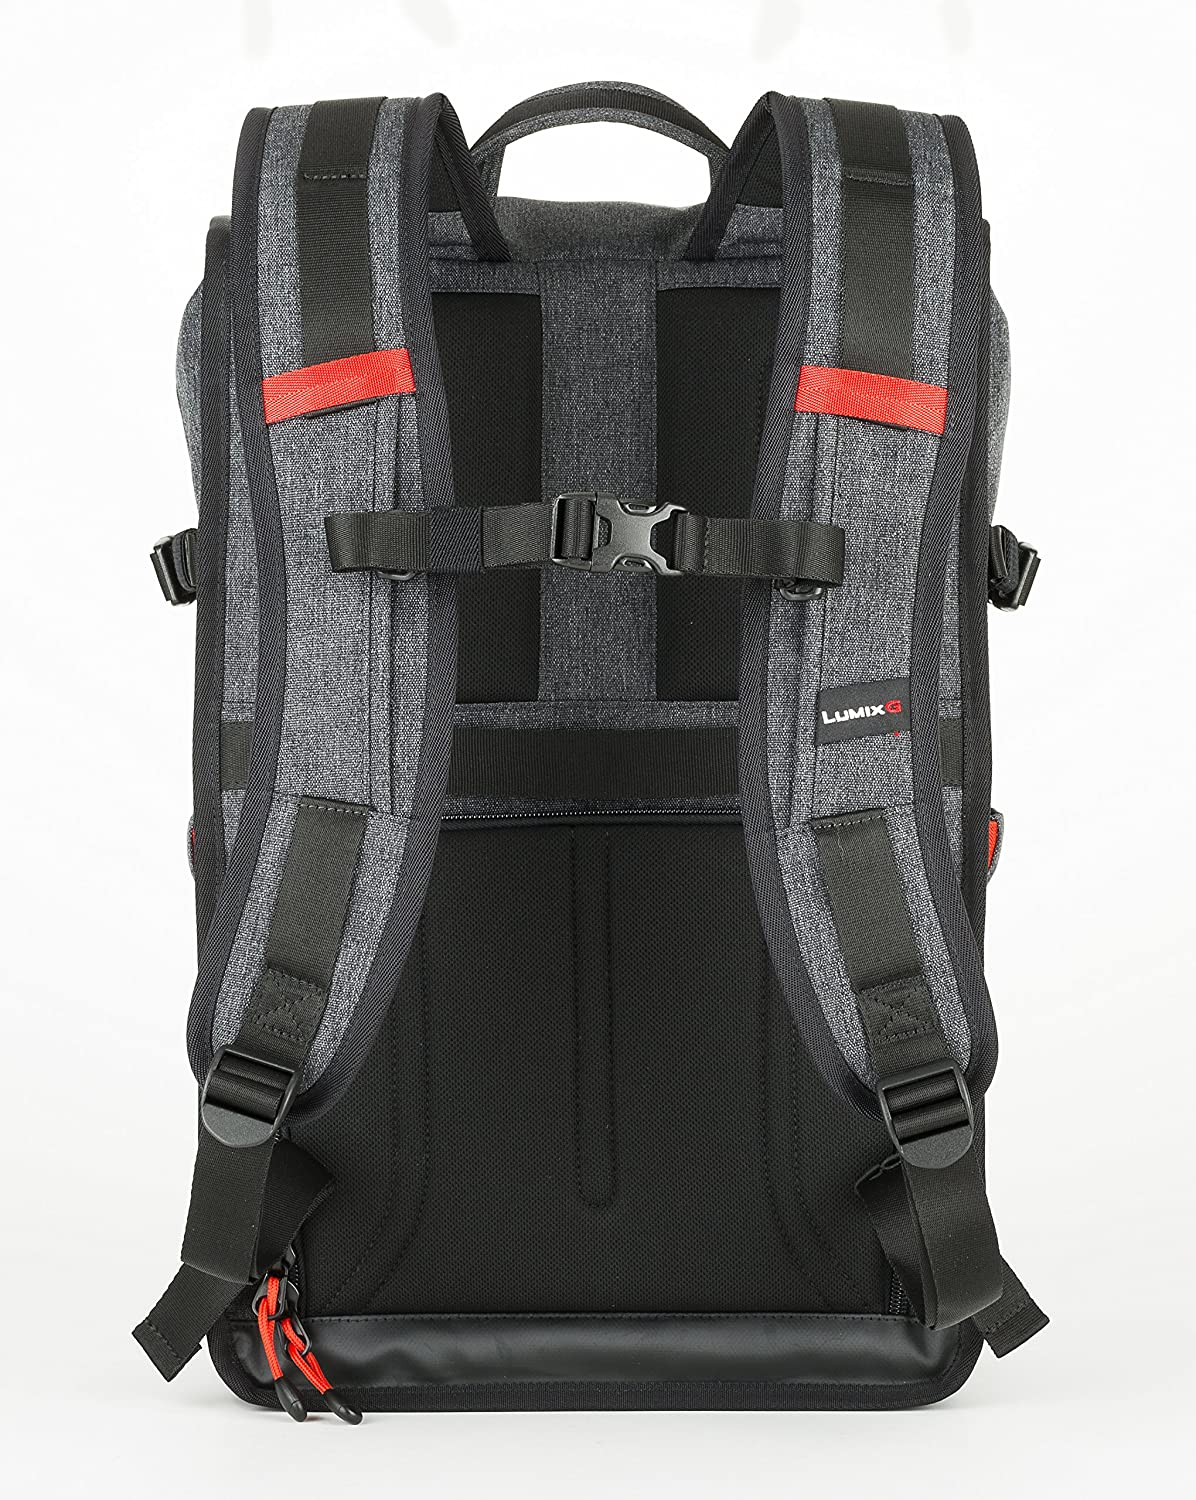 LUMIX DMW-PB10 Backpack 18.0 litres Water-Resistant Base Suitable for Laptops up to 15 Inches Grey//Black